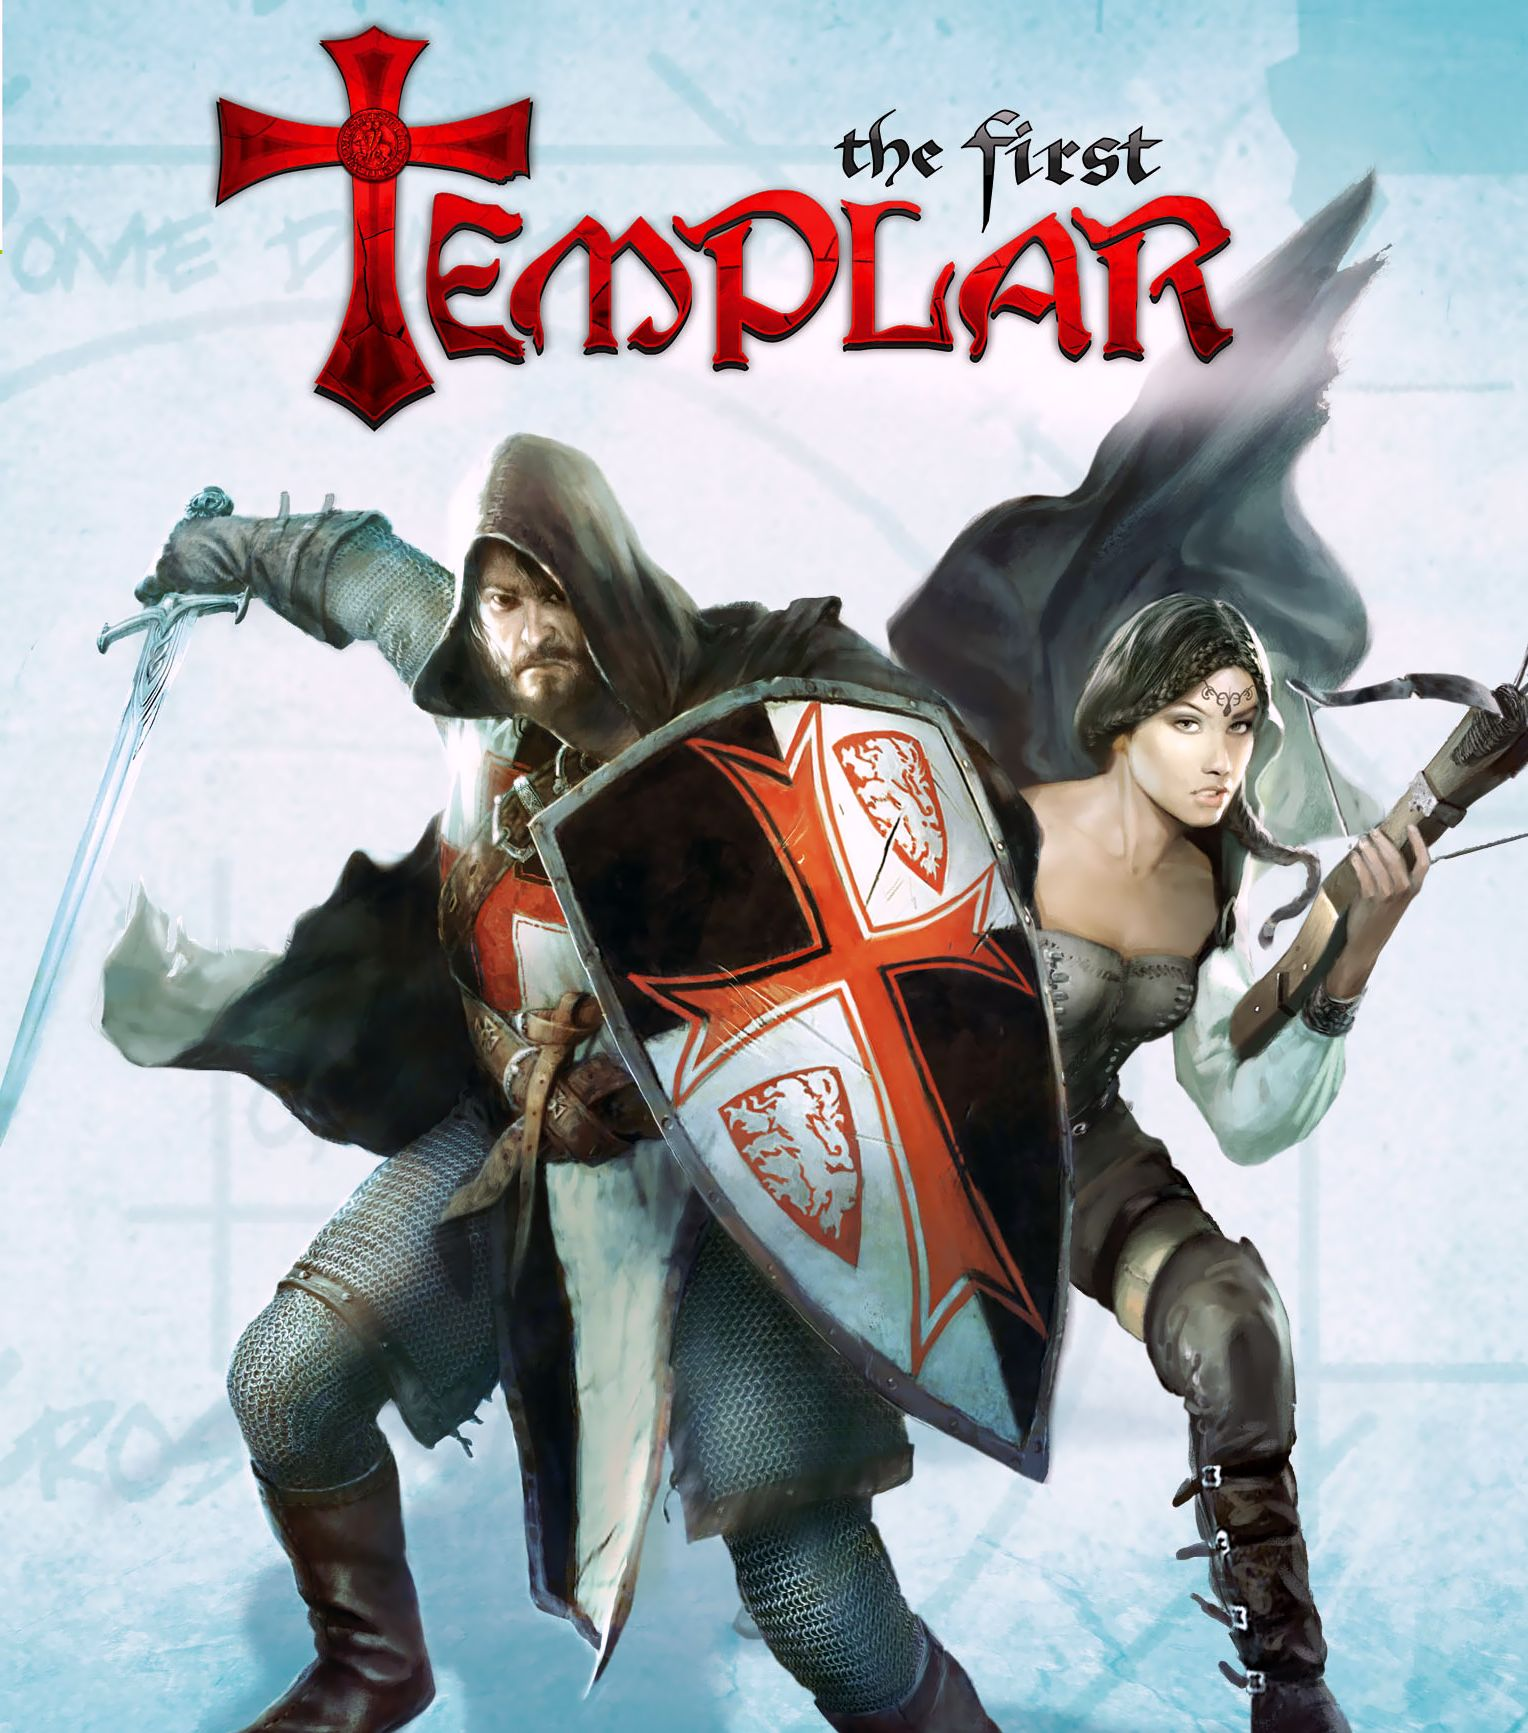 The First Templar - Steam Special Edition Steam Key/ROW